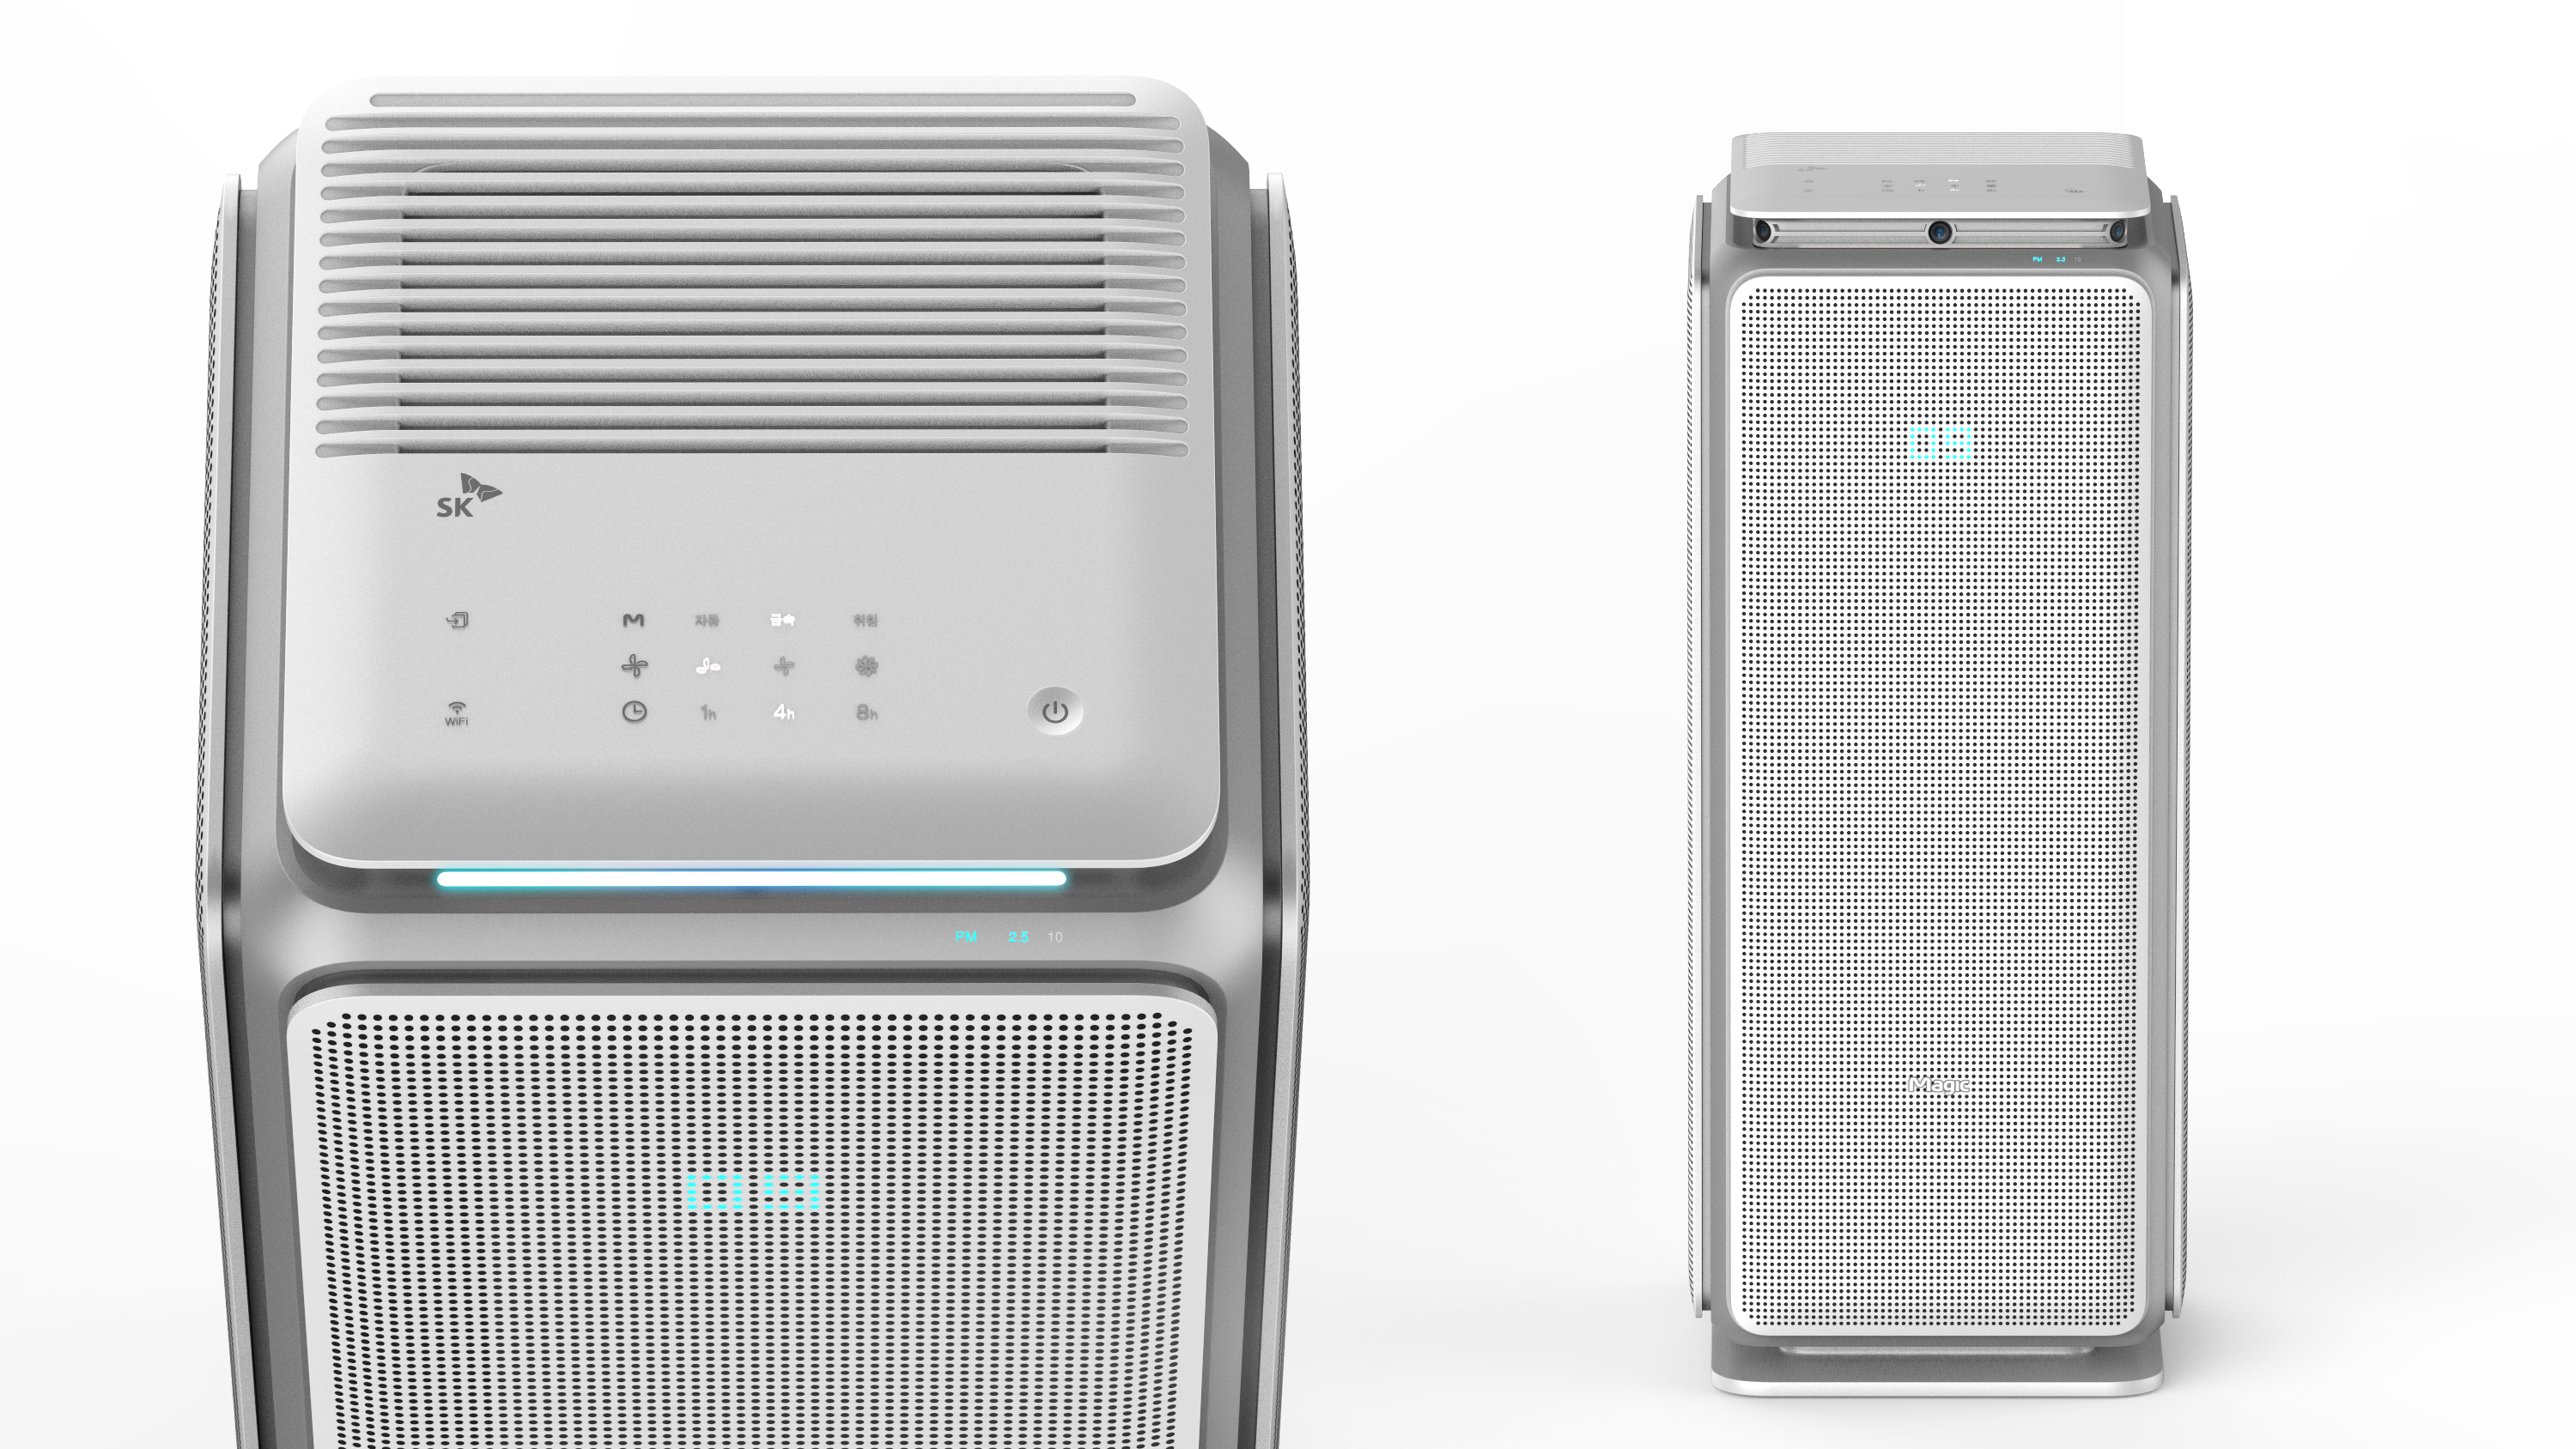 SK magic air purifier designed by BKID air purifier